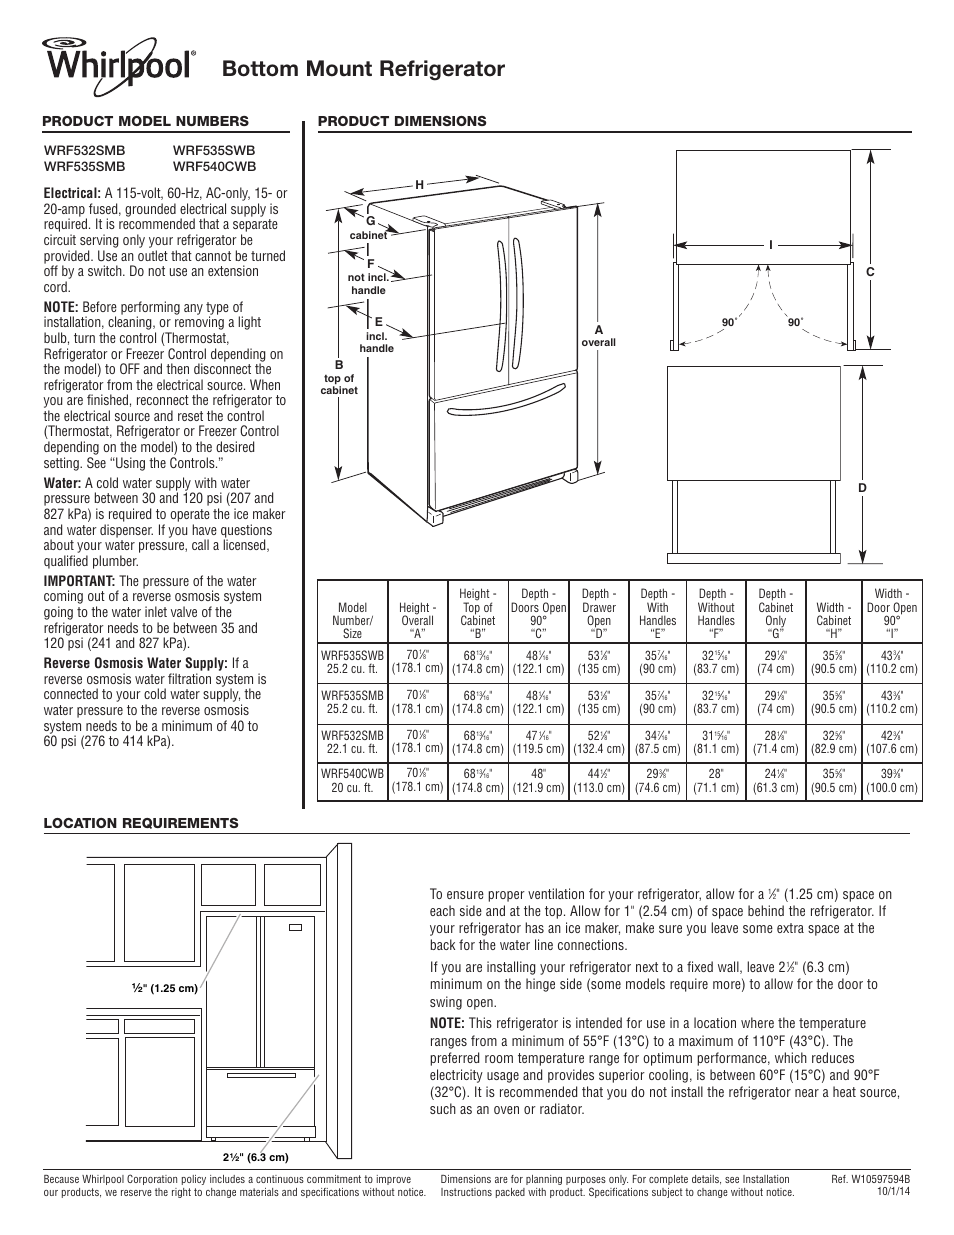 whirlpool wrf535smbm user manual